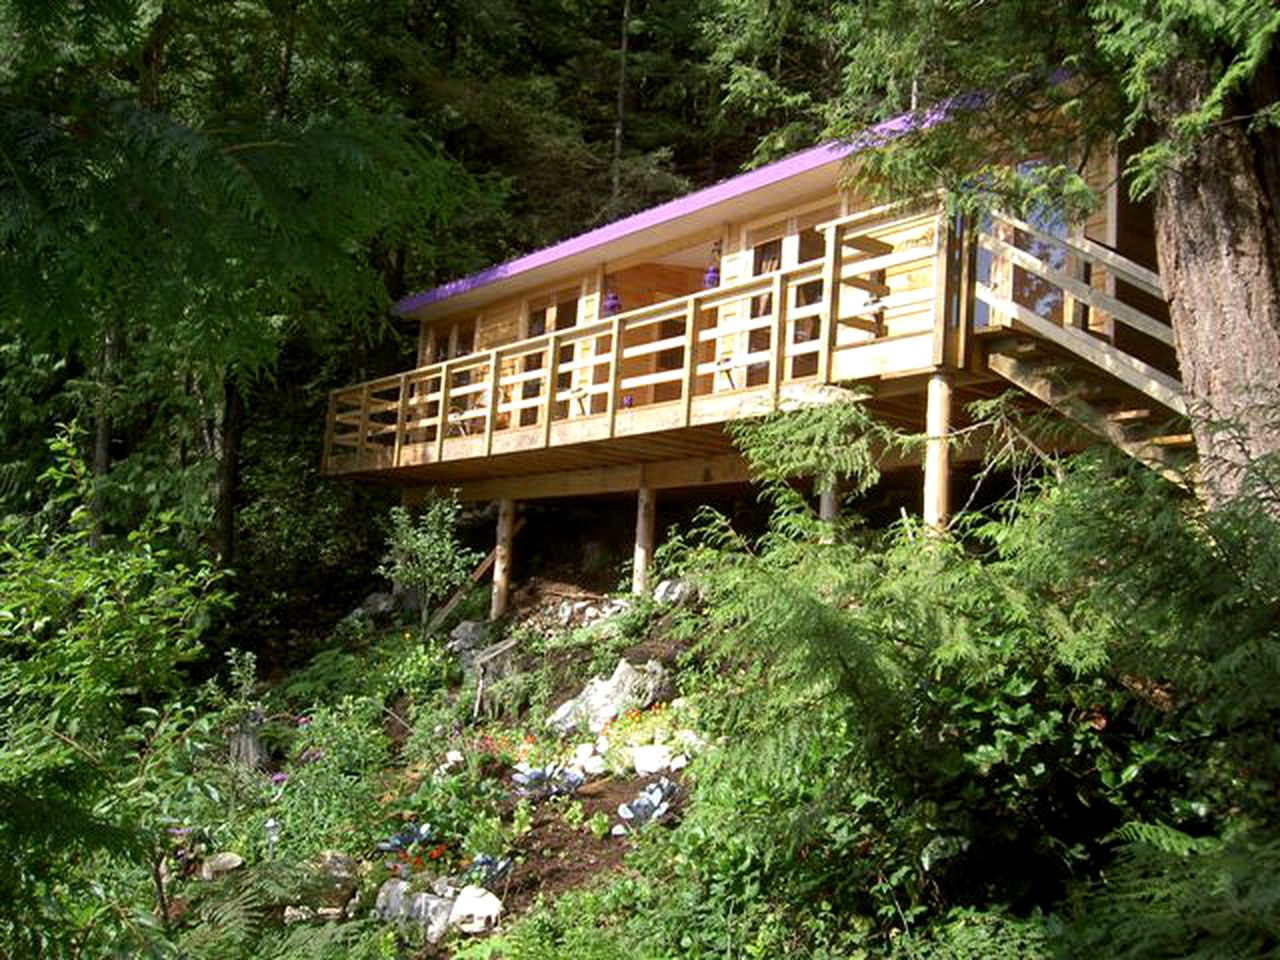 Cabins (Harrison Hot Springs, British Columbia, Canada)